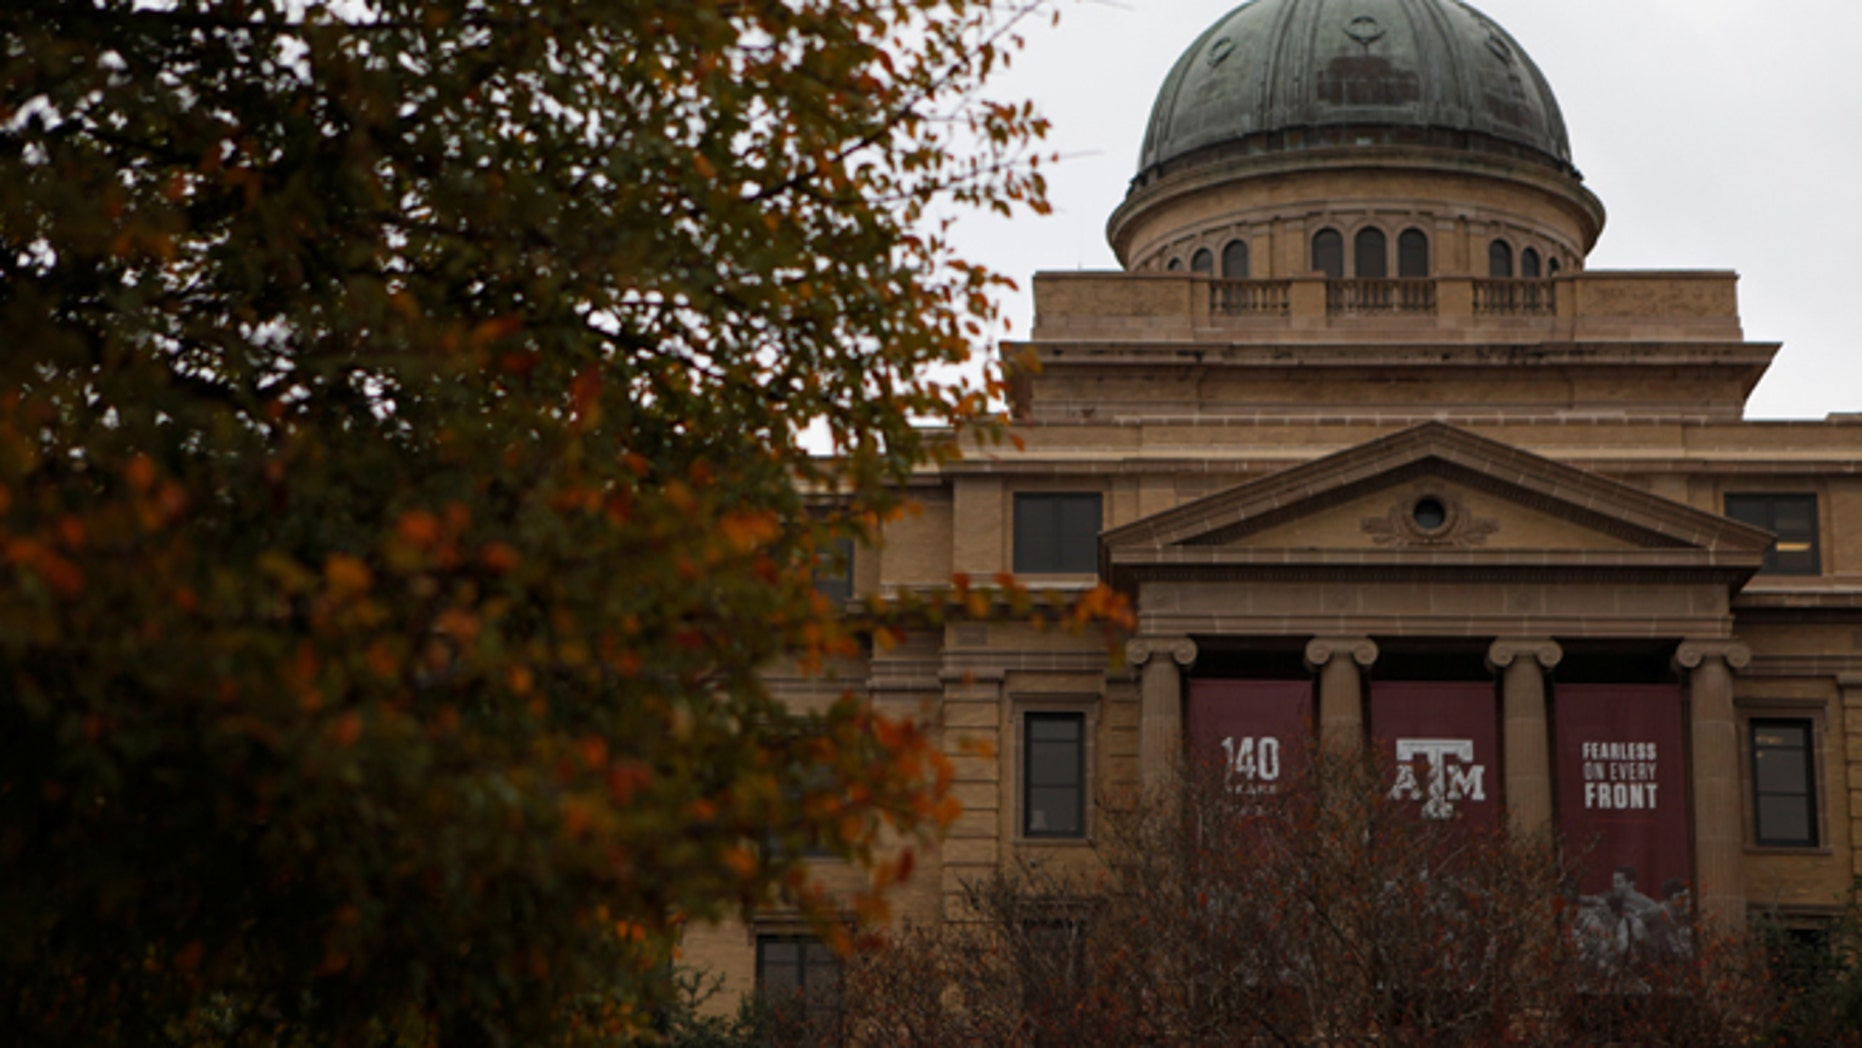 The campus of Texas A&M University.